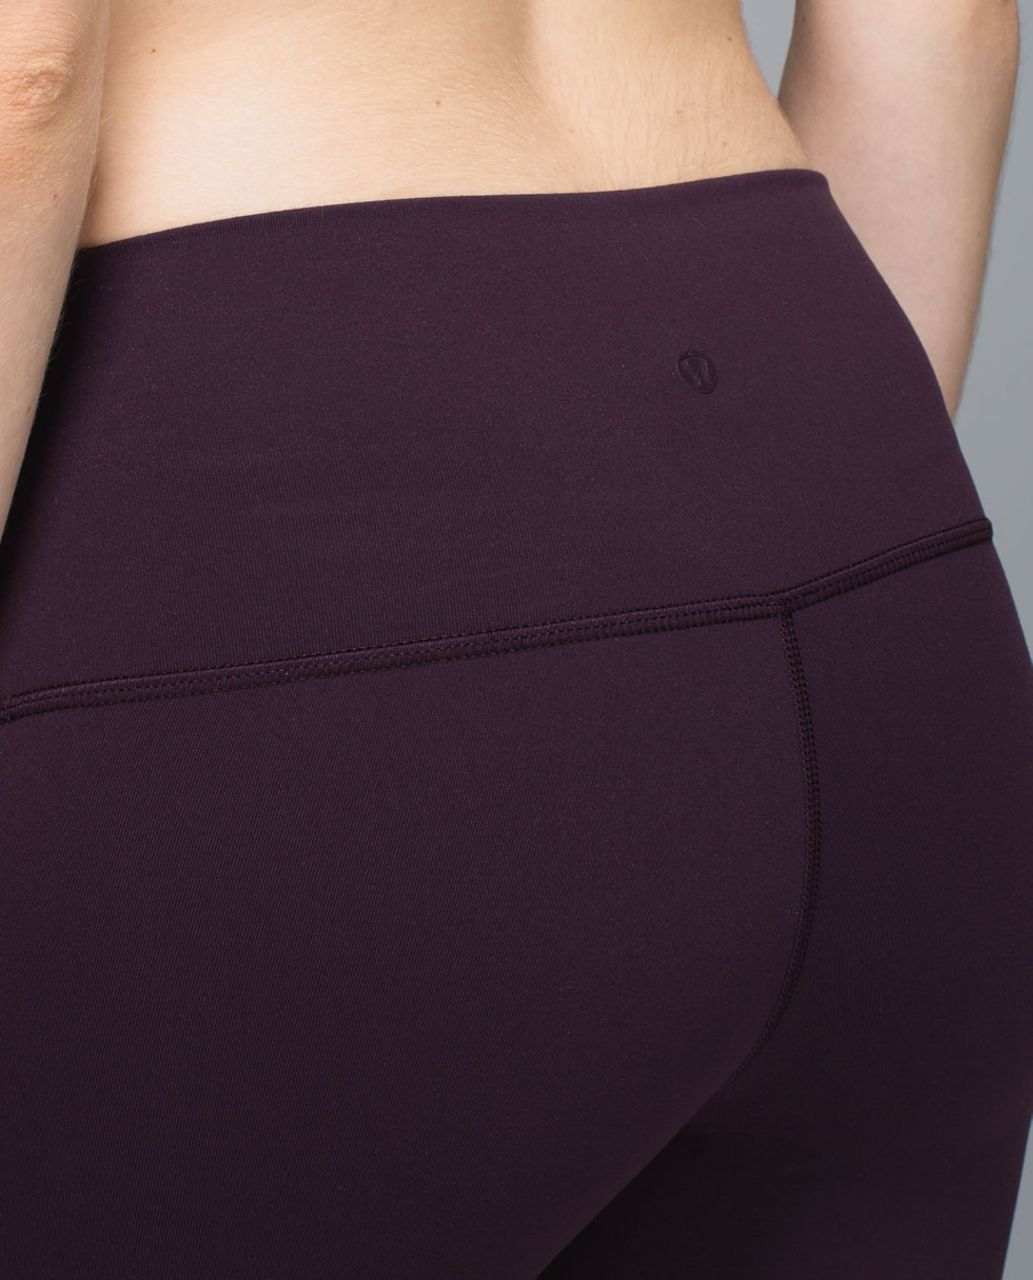 Lululemon High Times Pant (First Release) - Black Cherry